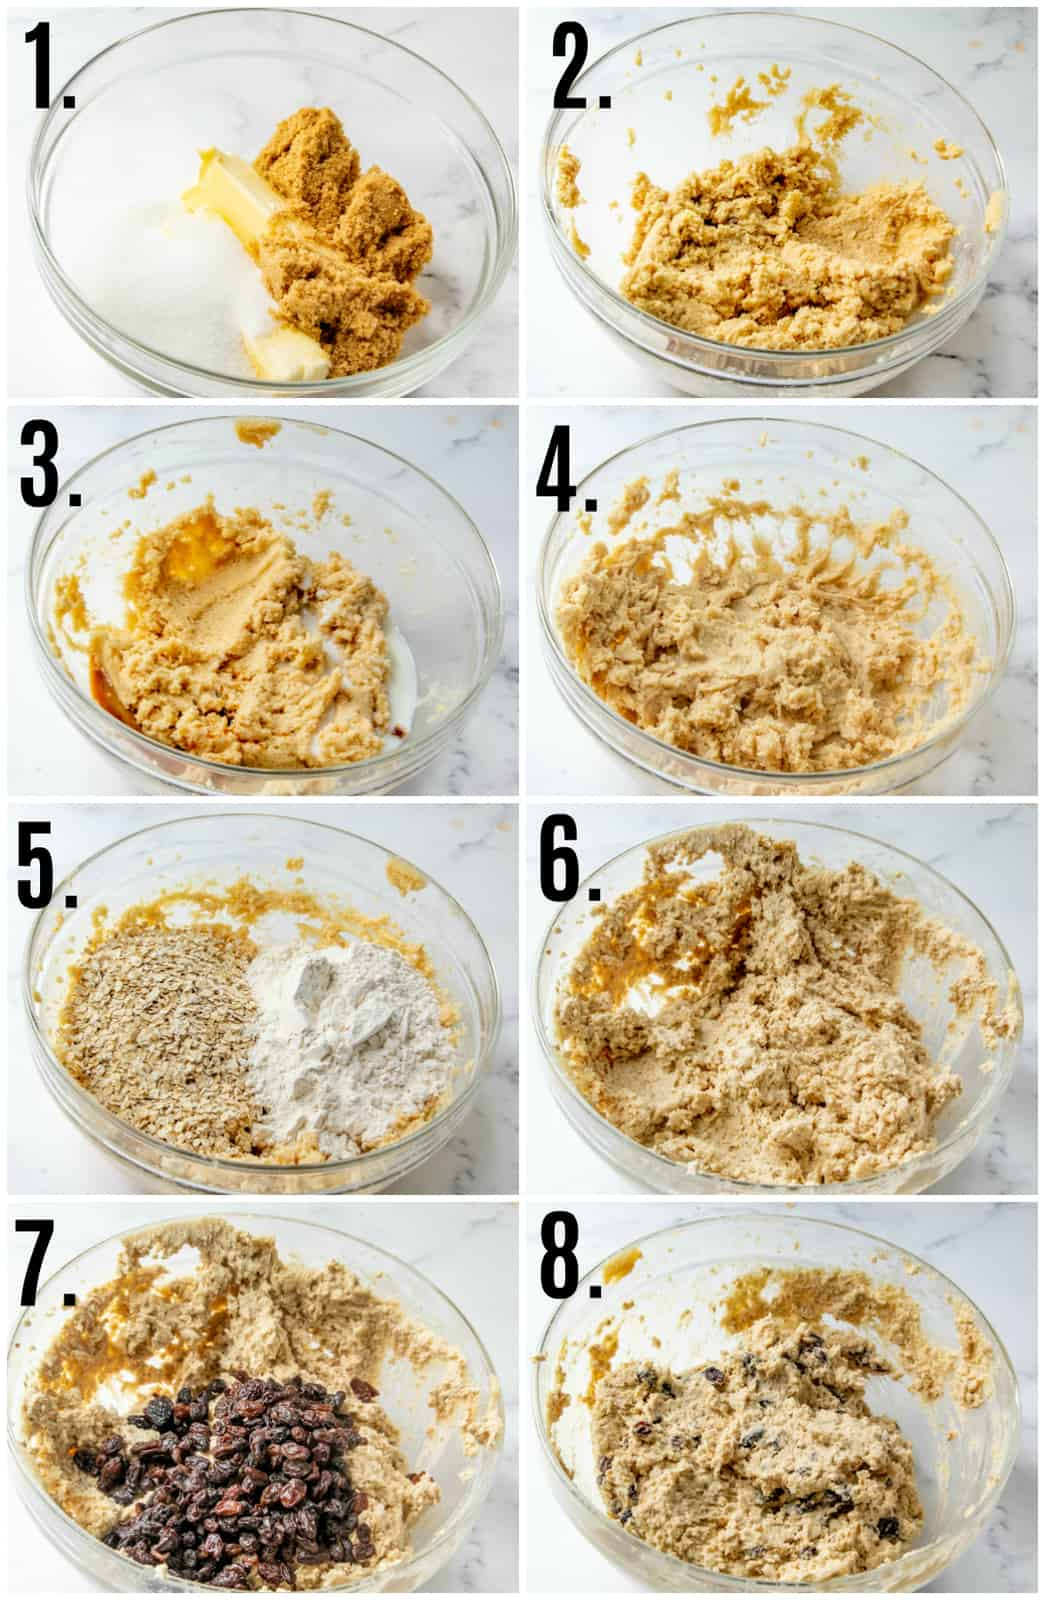 Step by step photos on how to make Oatmeal Raisin Edible Cookie Dough